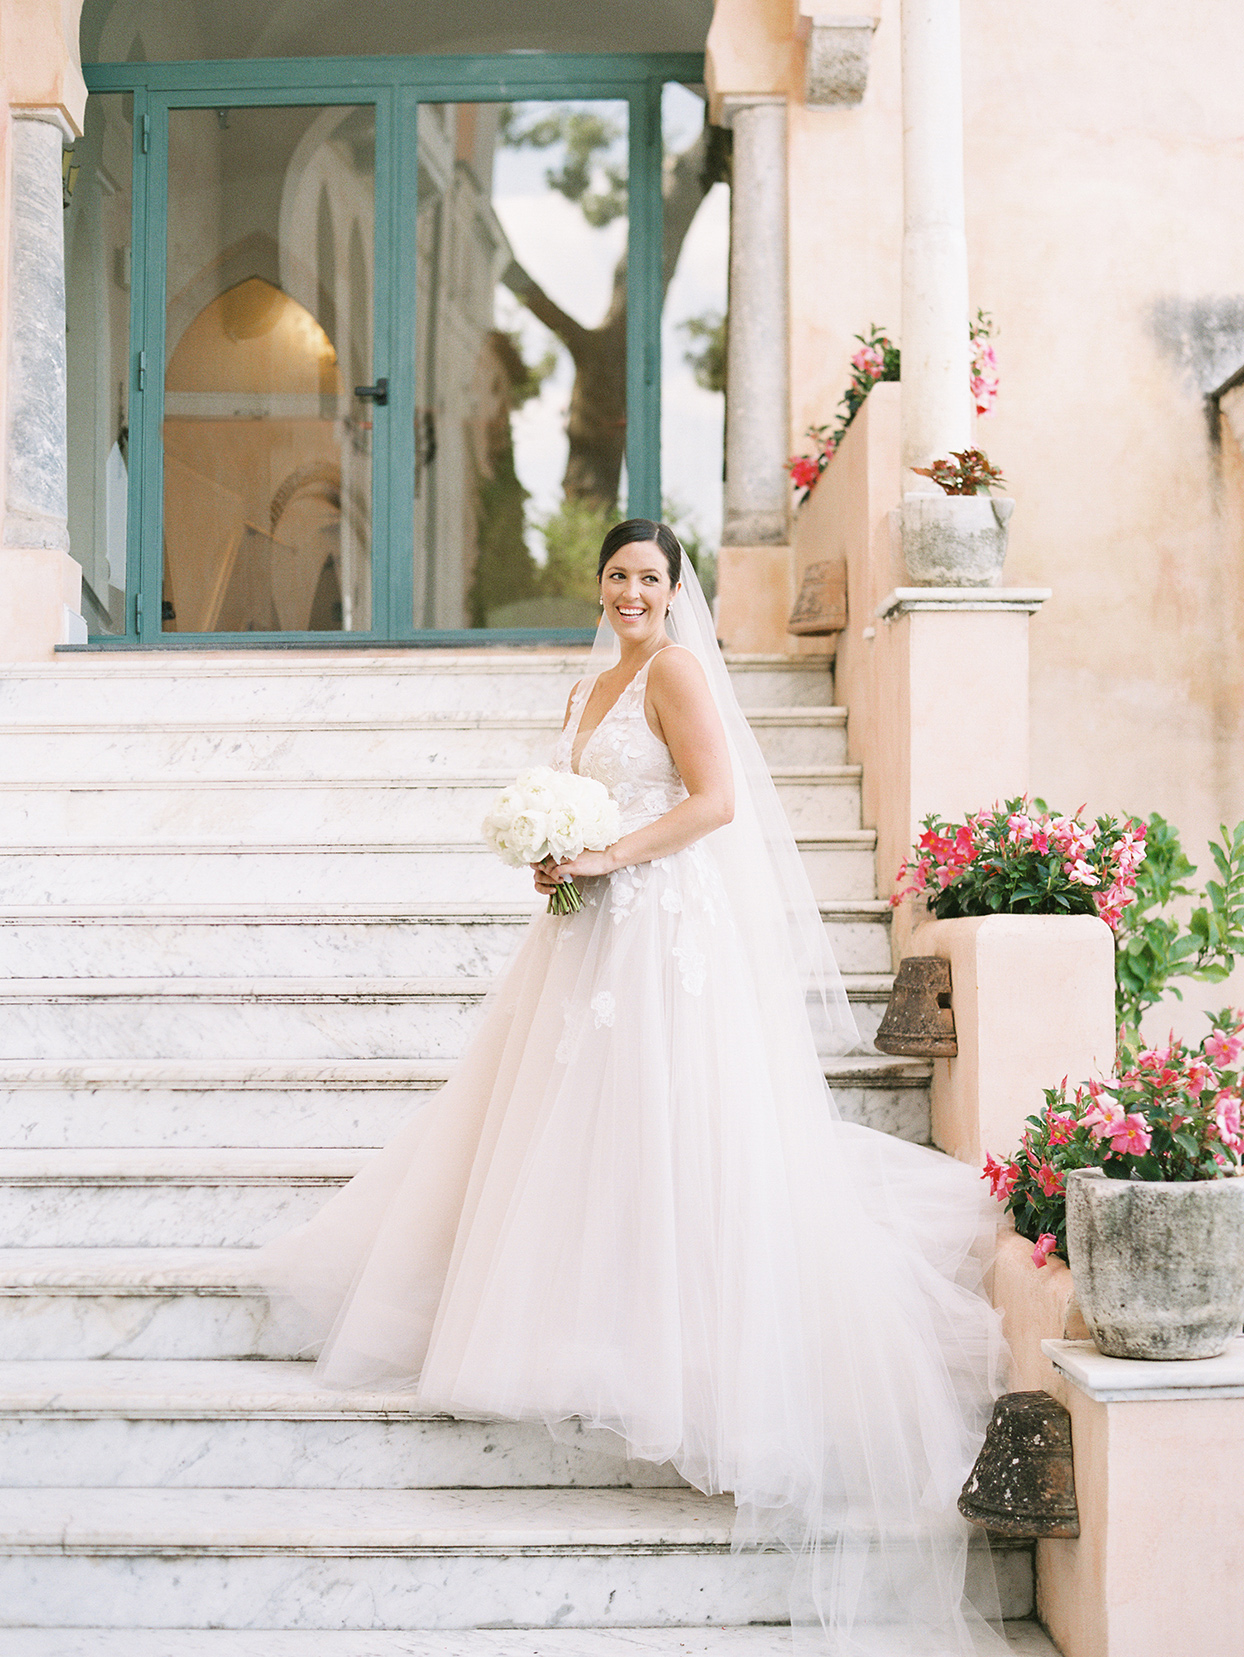 The Bride's Ball Gown